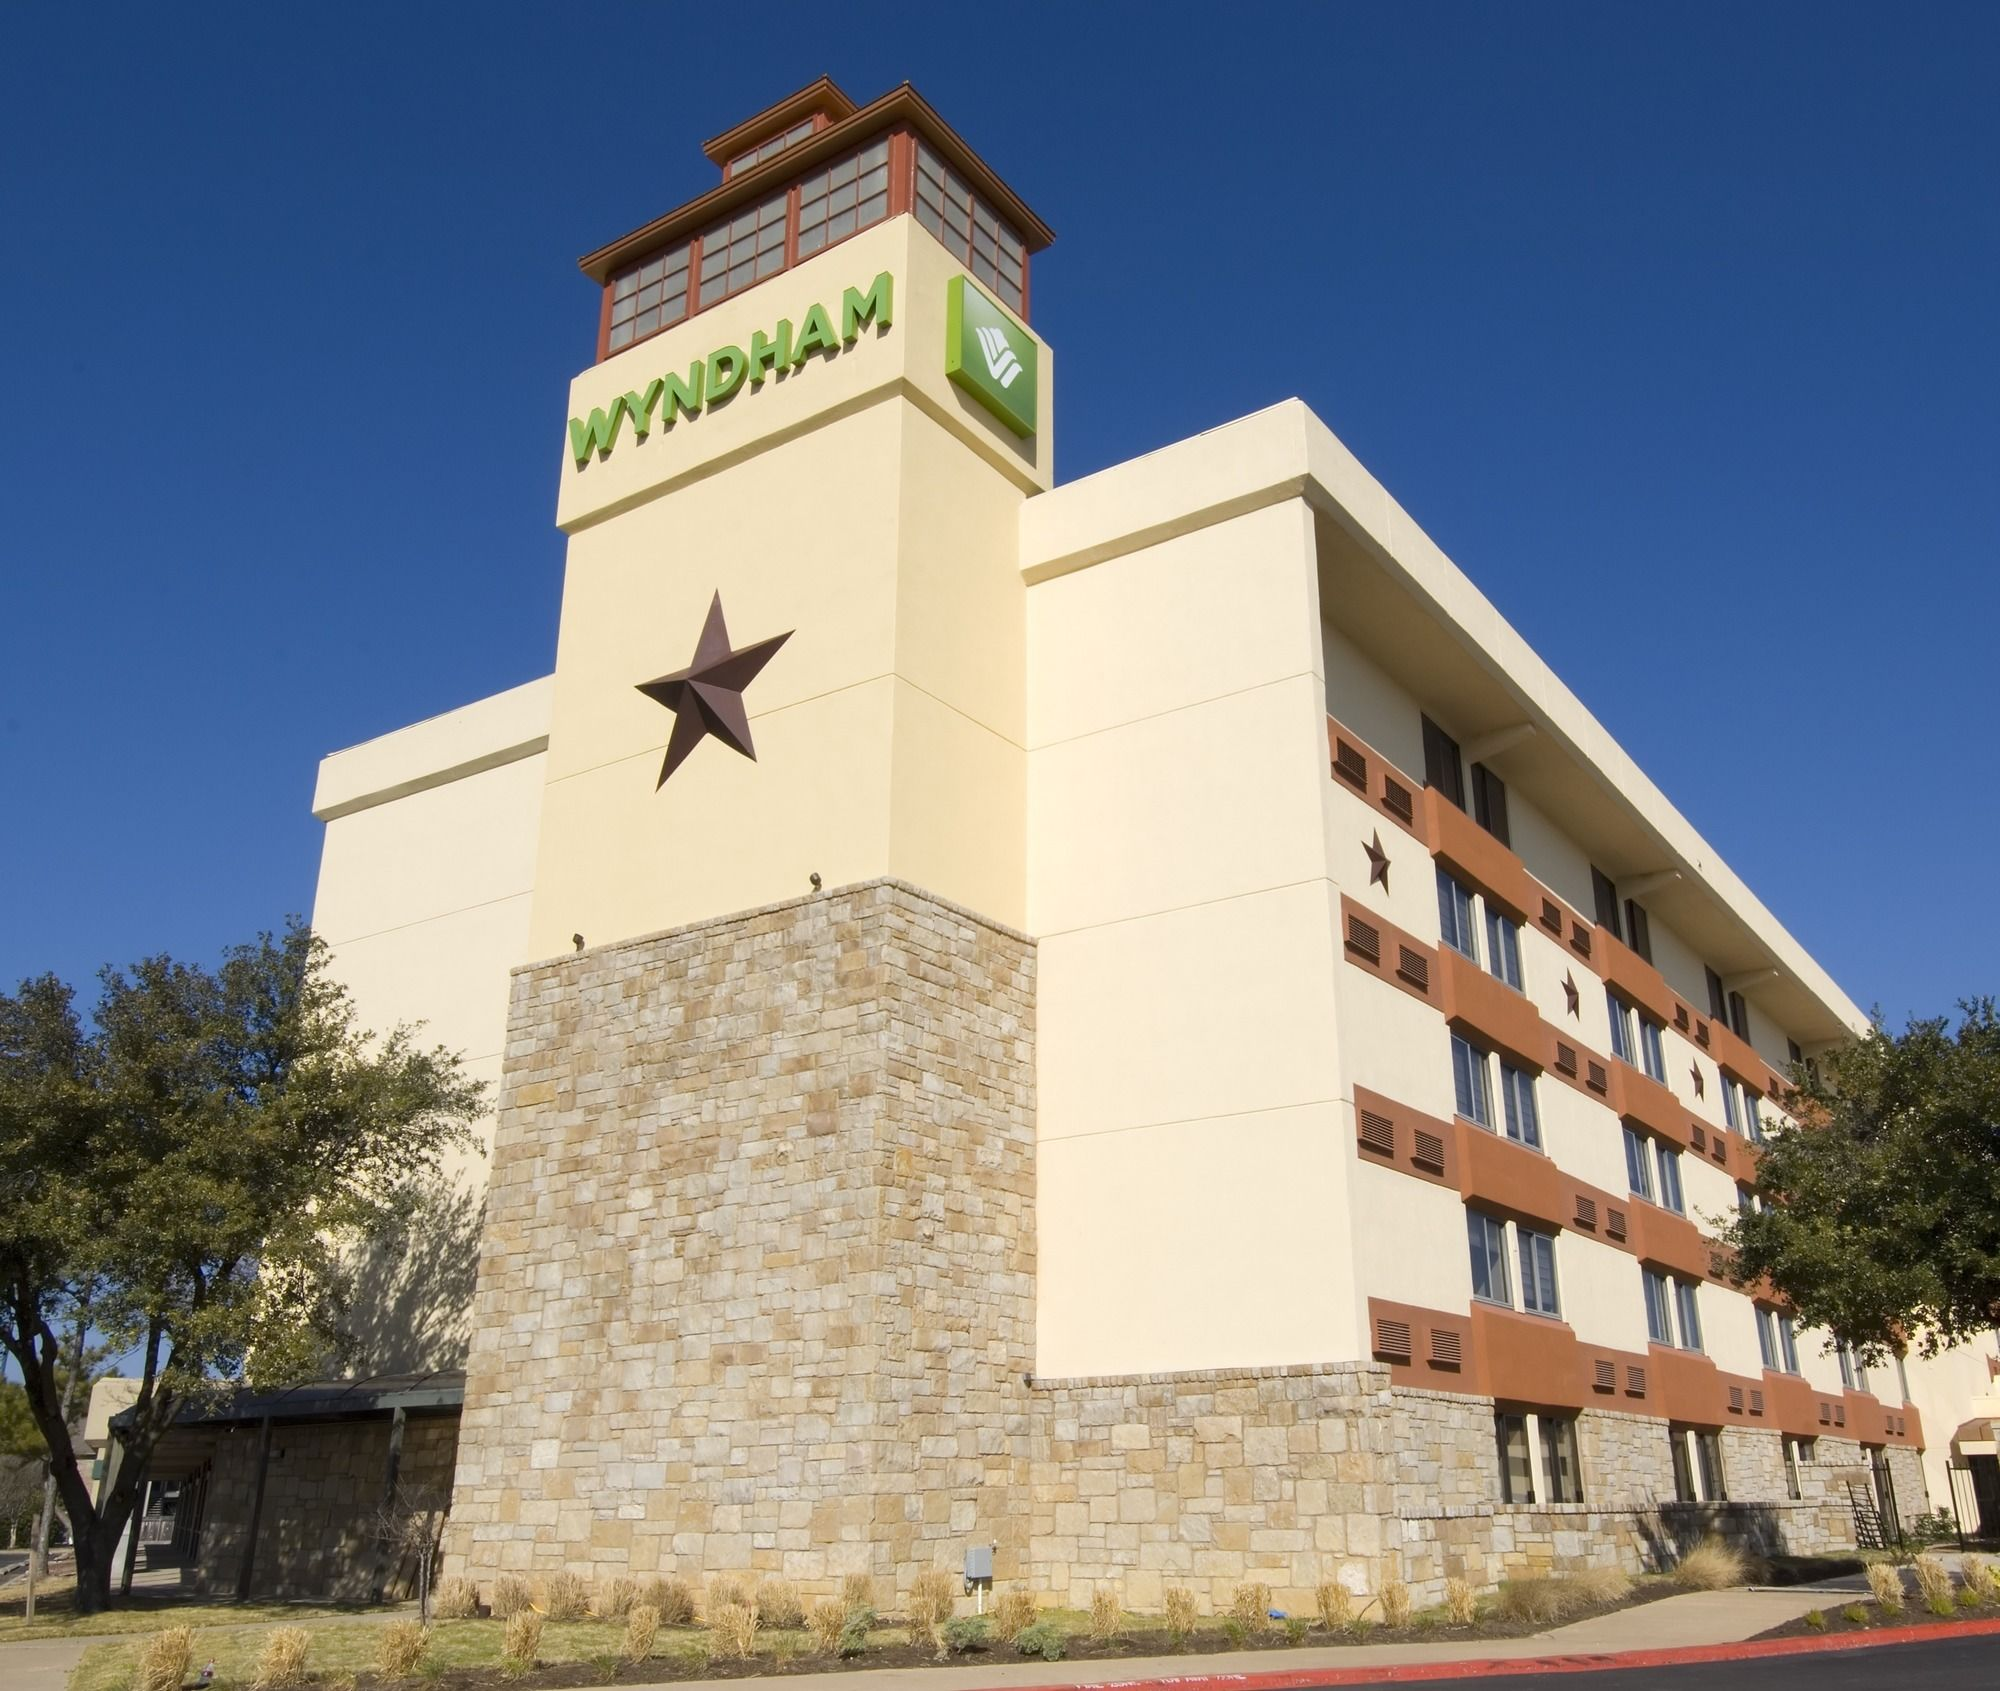 discount coupon for wyndham garden hotel austin in austin texas rh freehotelcoupons com wyndham garden hotel austin 78721 wyndham garden hotel austin austin